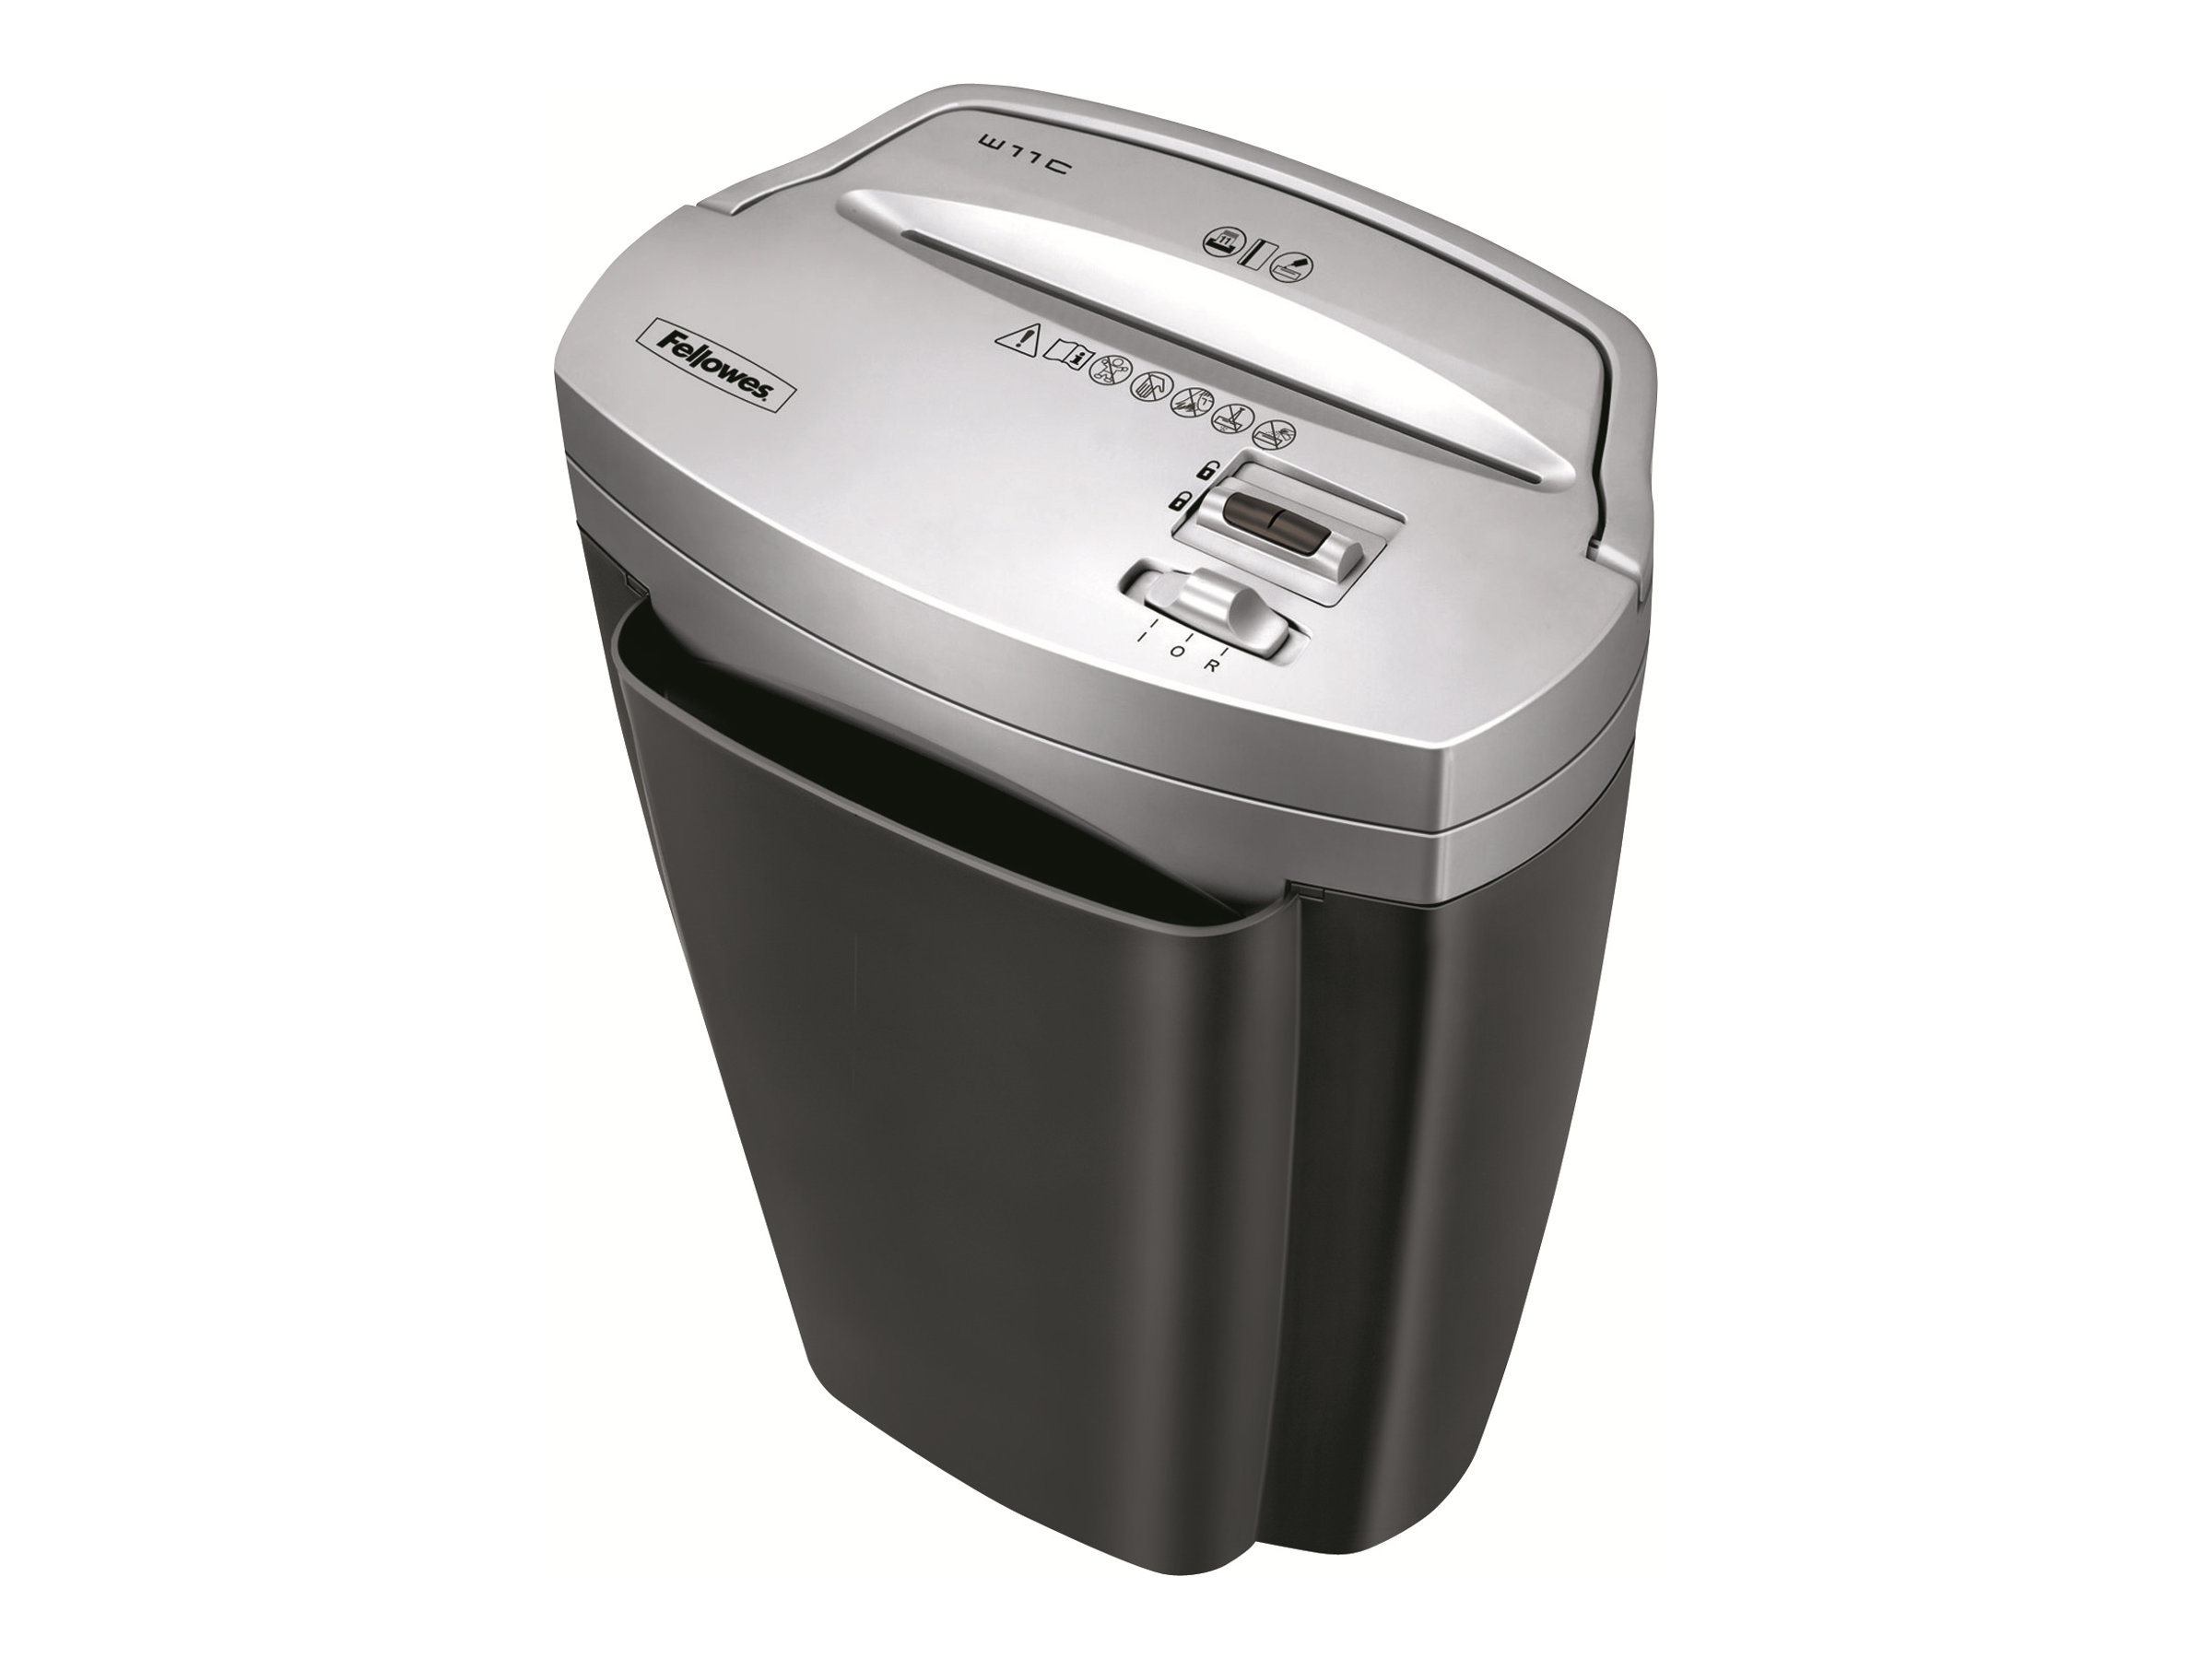 Image for Fellowes Powershred W-11C - Shredder from Circuit City